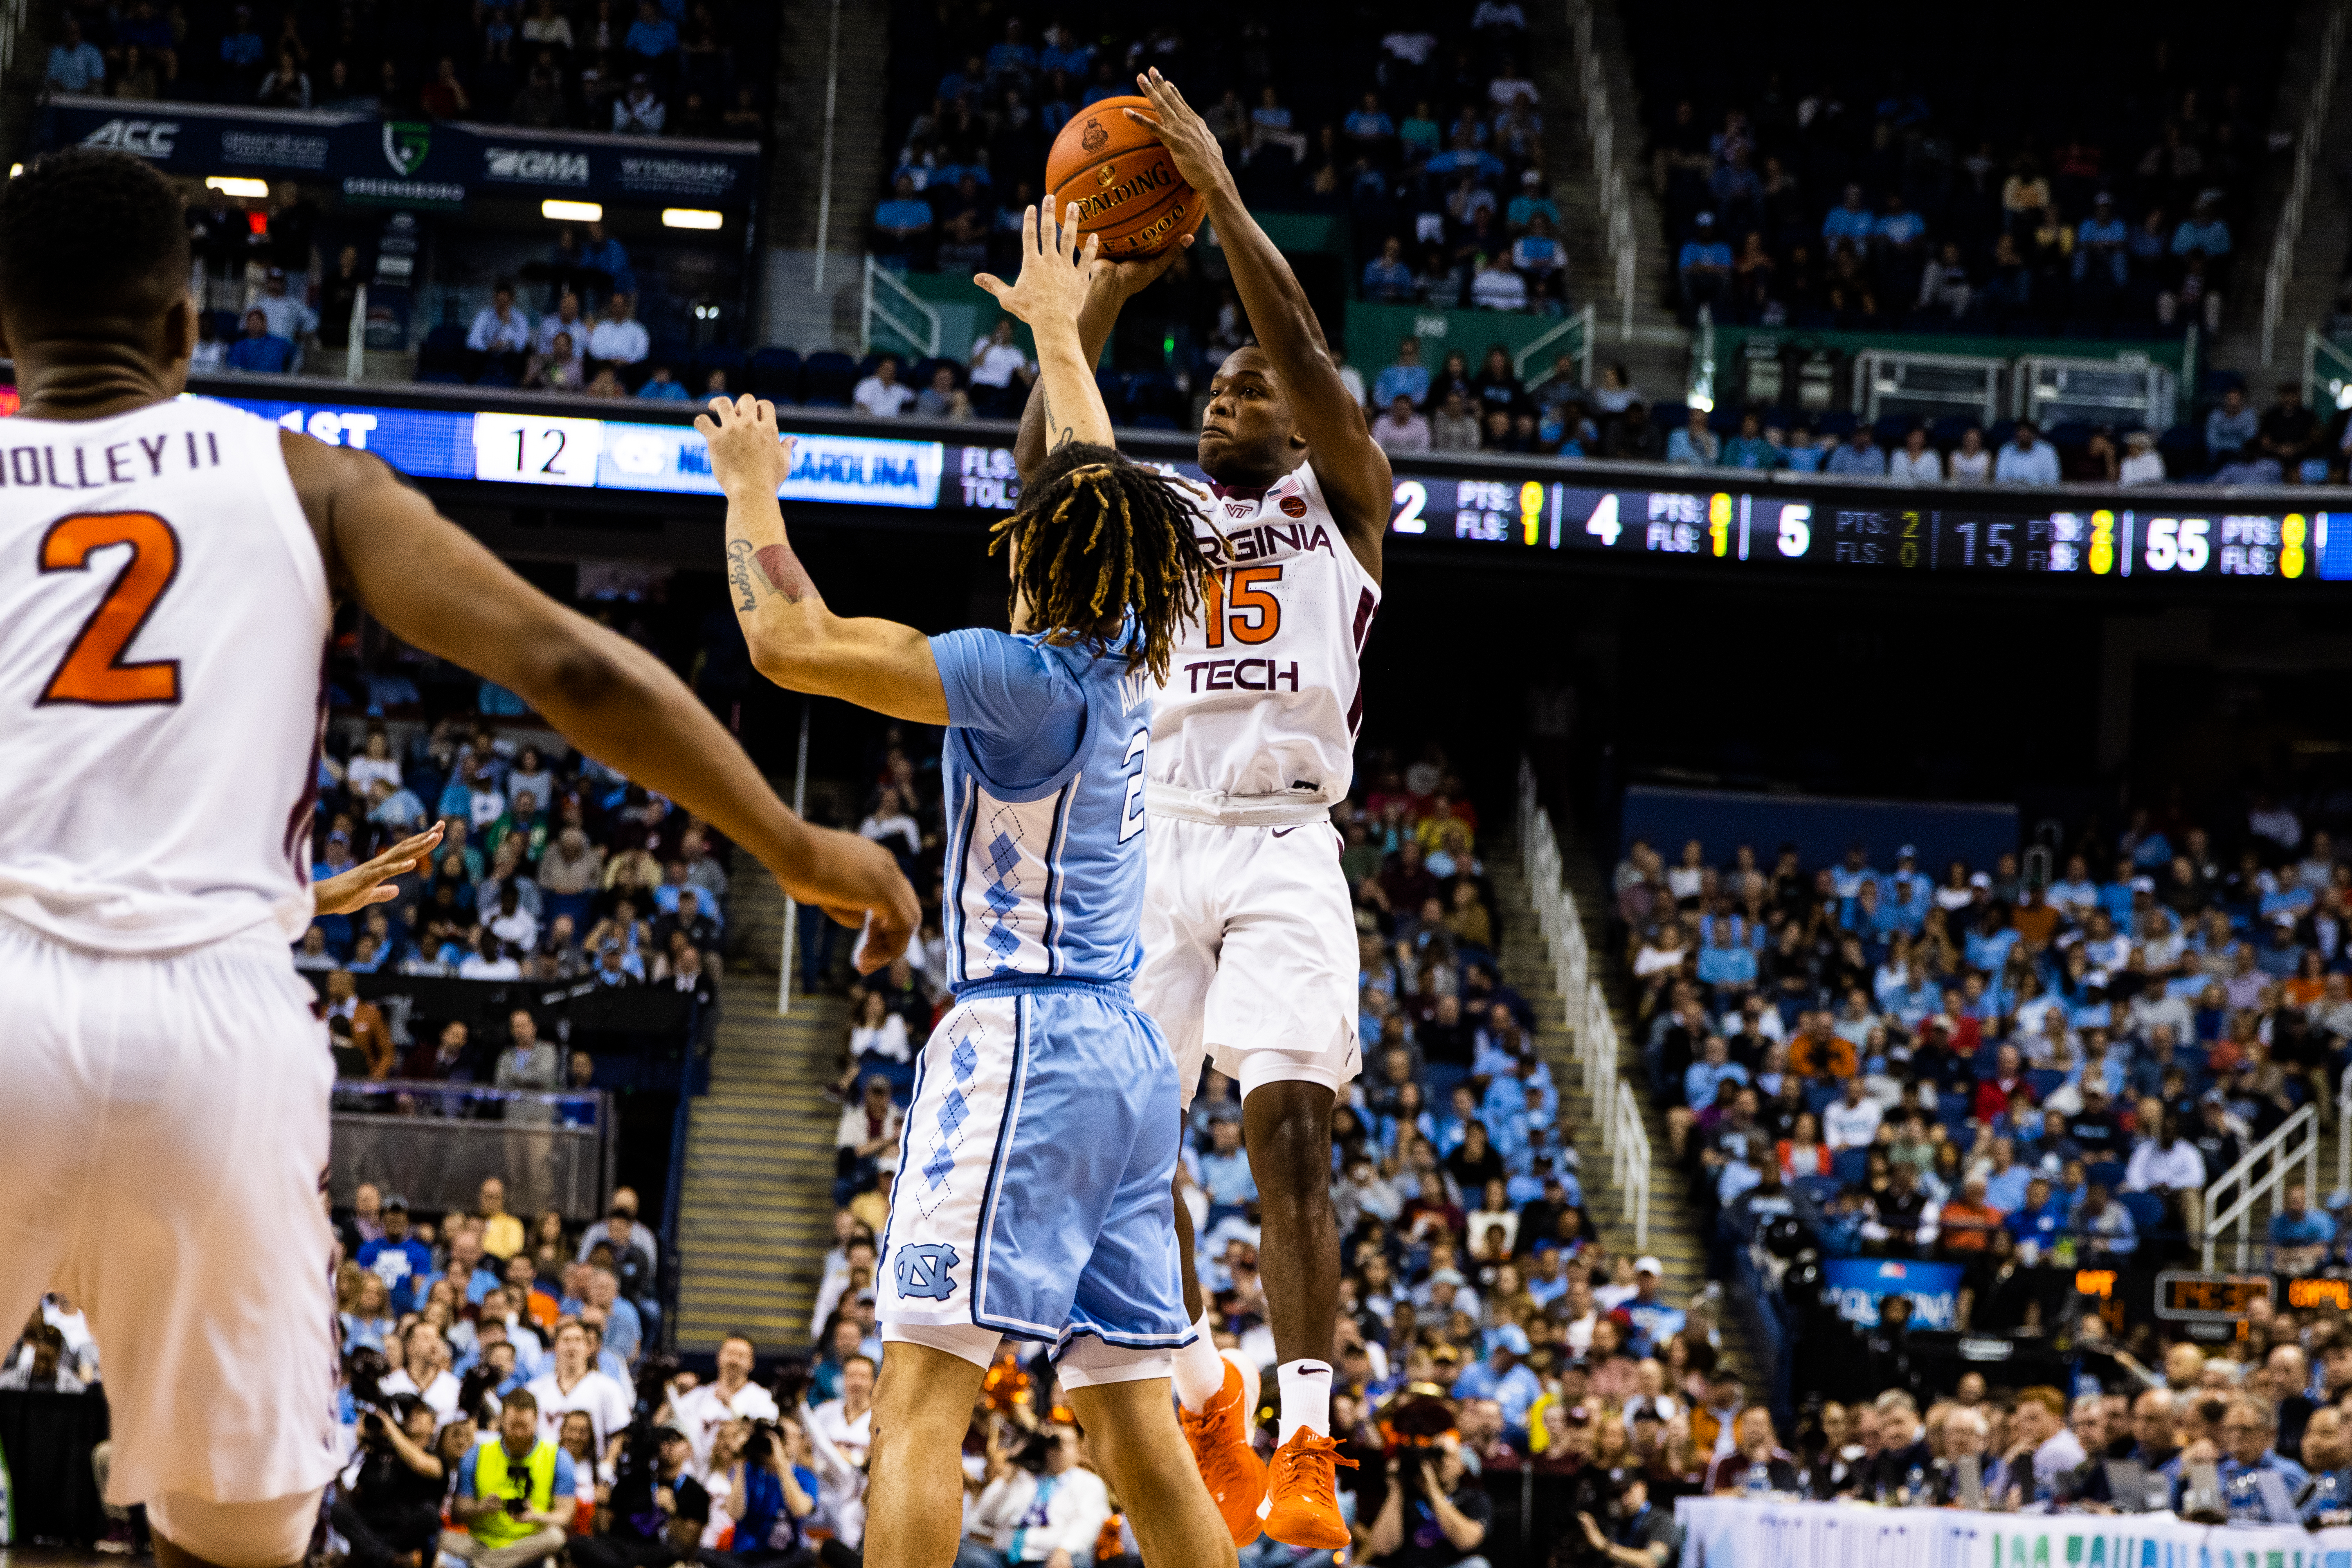 Virginia Tech Loses to North Carolina 78-56 in the First Round of the 2020 ACC Tournament